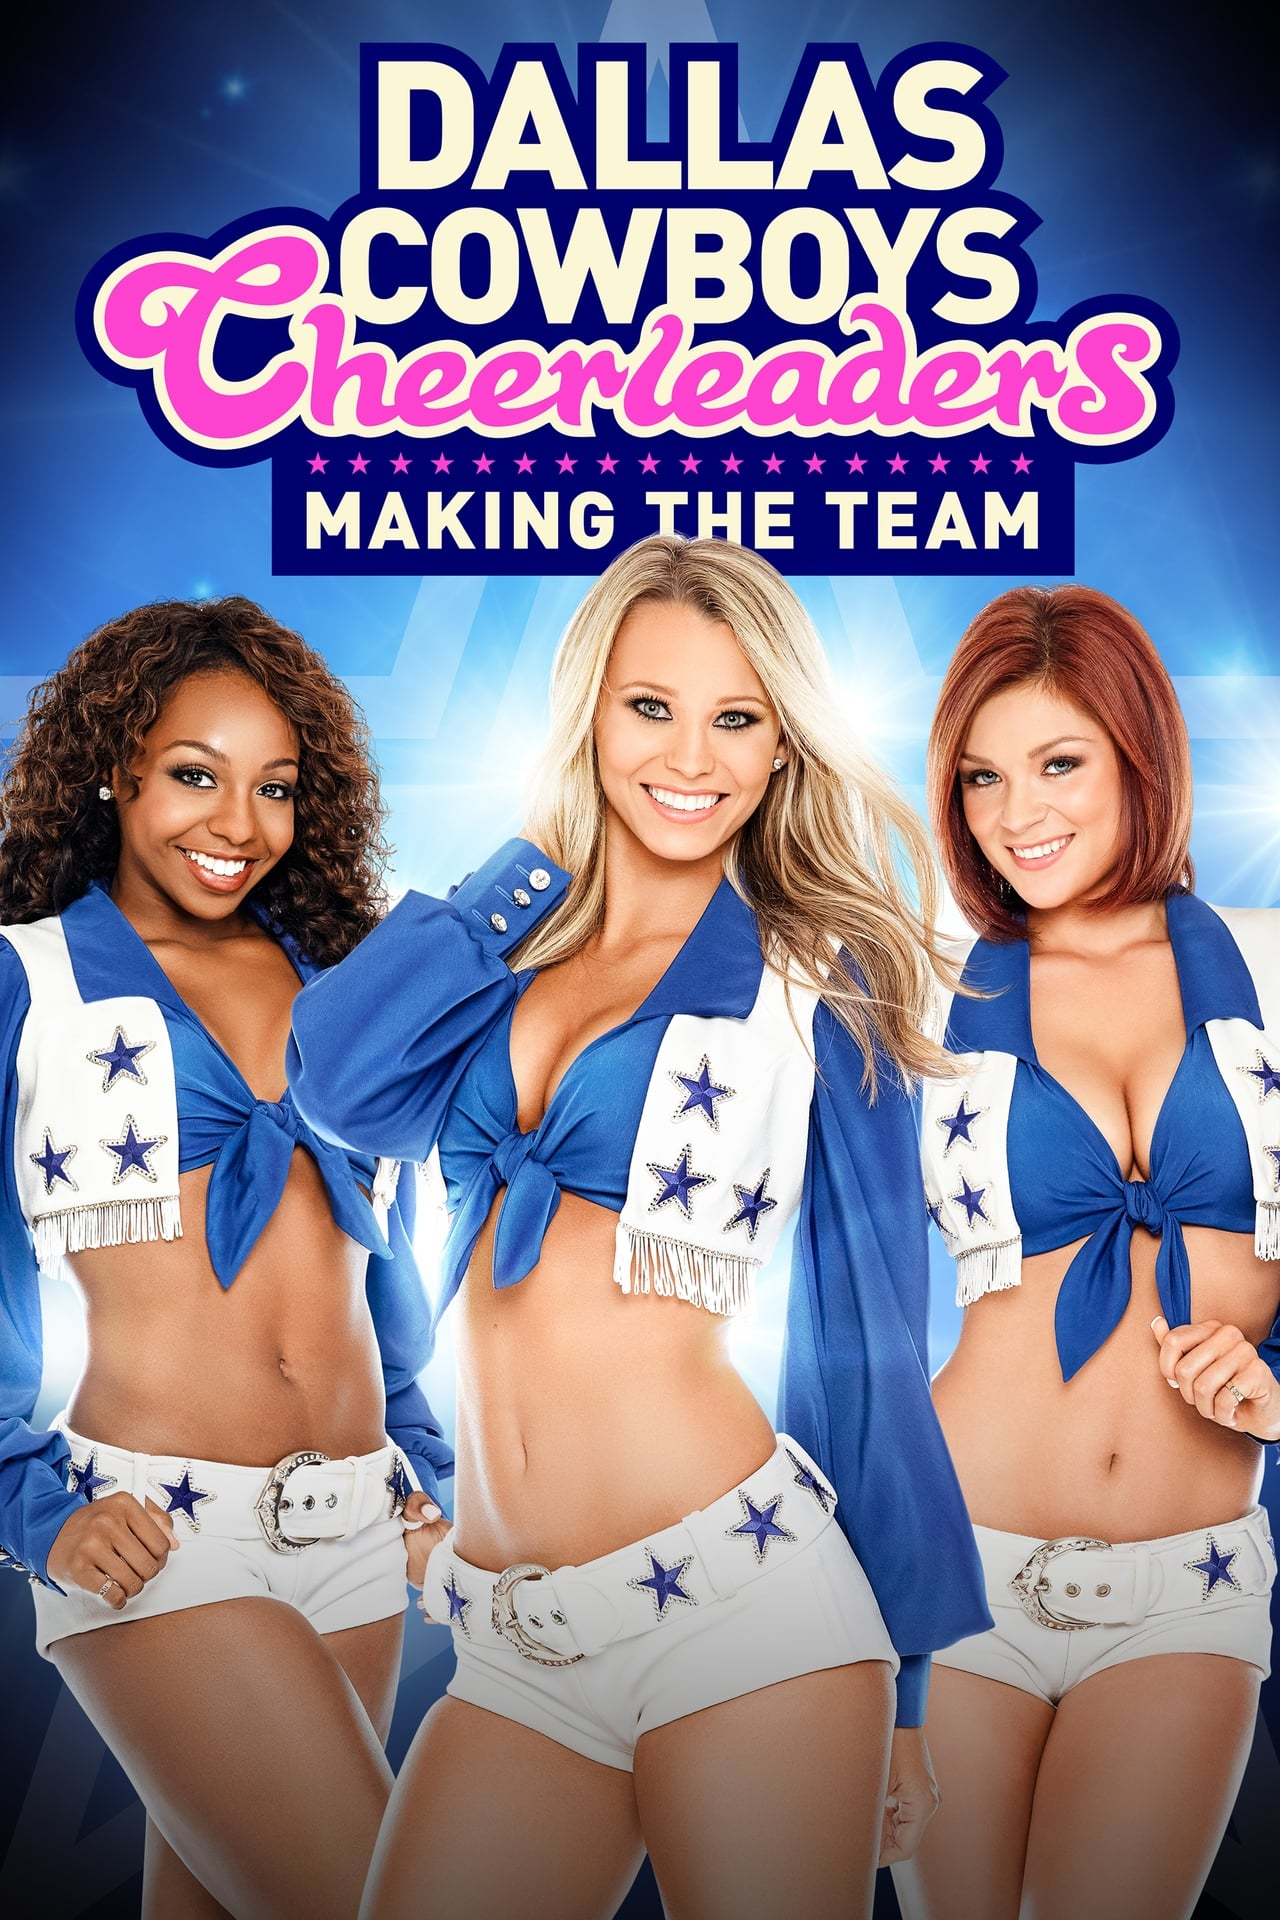 Dallas Cowboys Cheerleaders: Making The Team Season 12 (2017) putlockers cafe